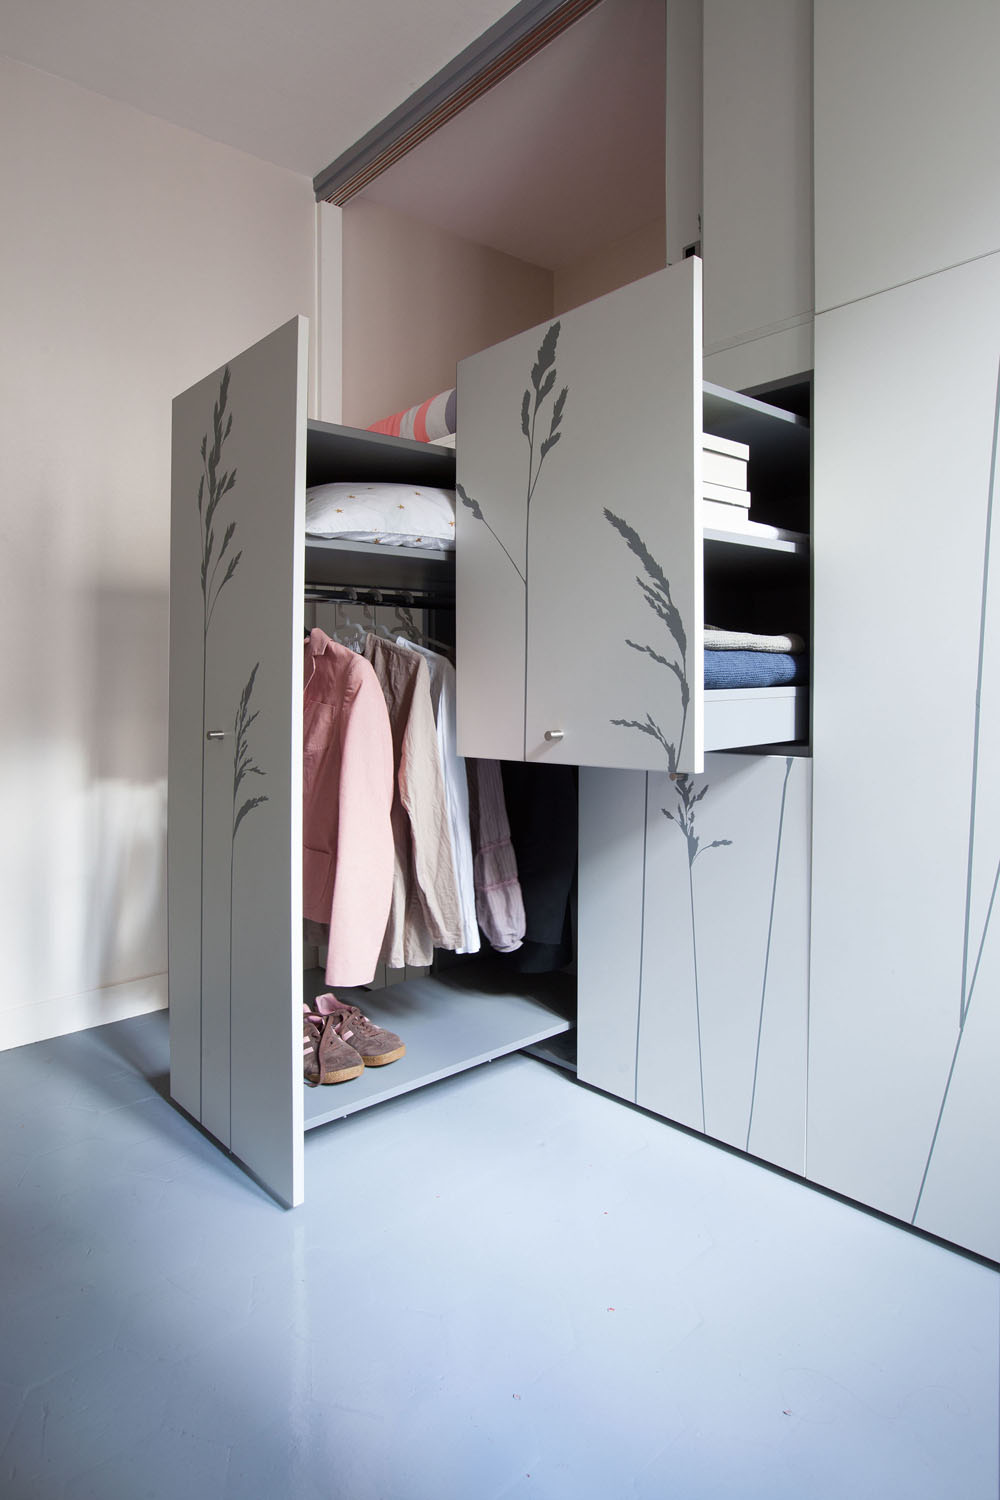 Compact Apartment In Paris by Kitoko Studio 5 Incredibly Small Apartment in Paris Reduces Functions to Minimum